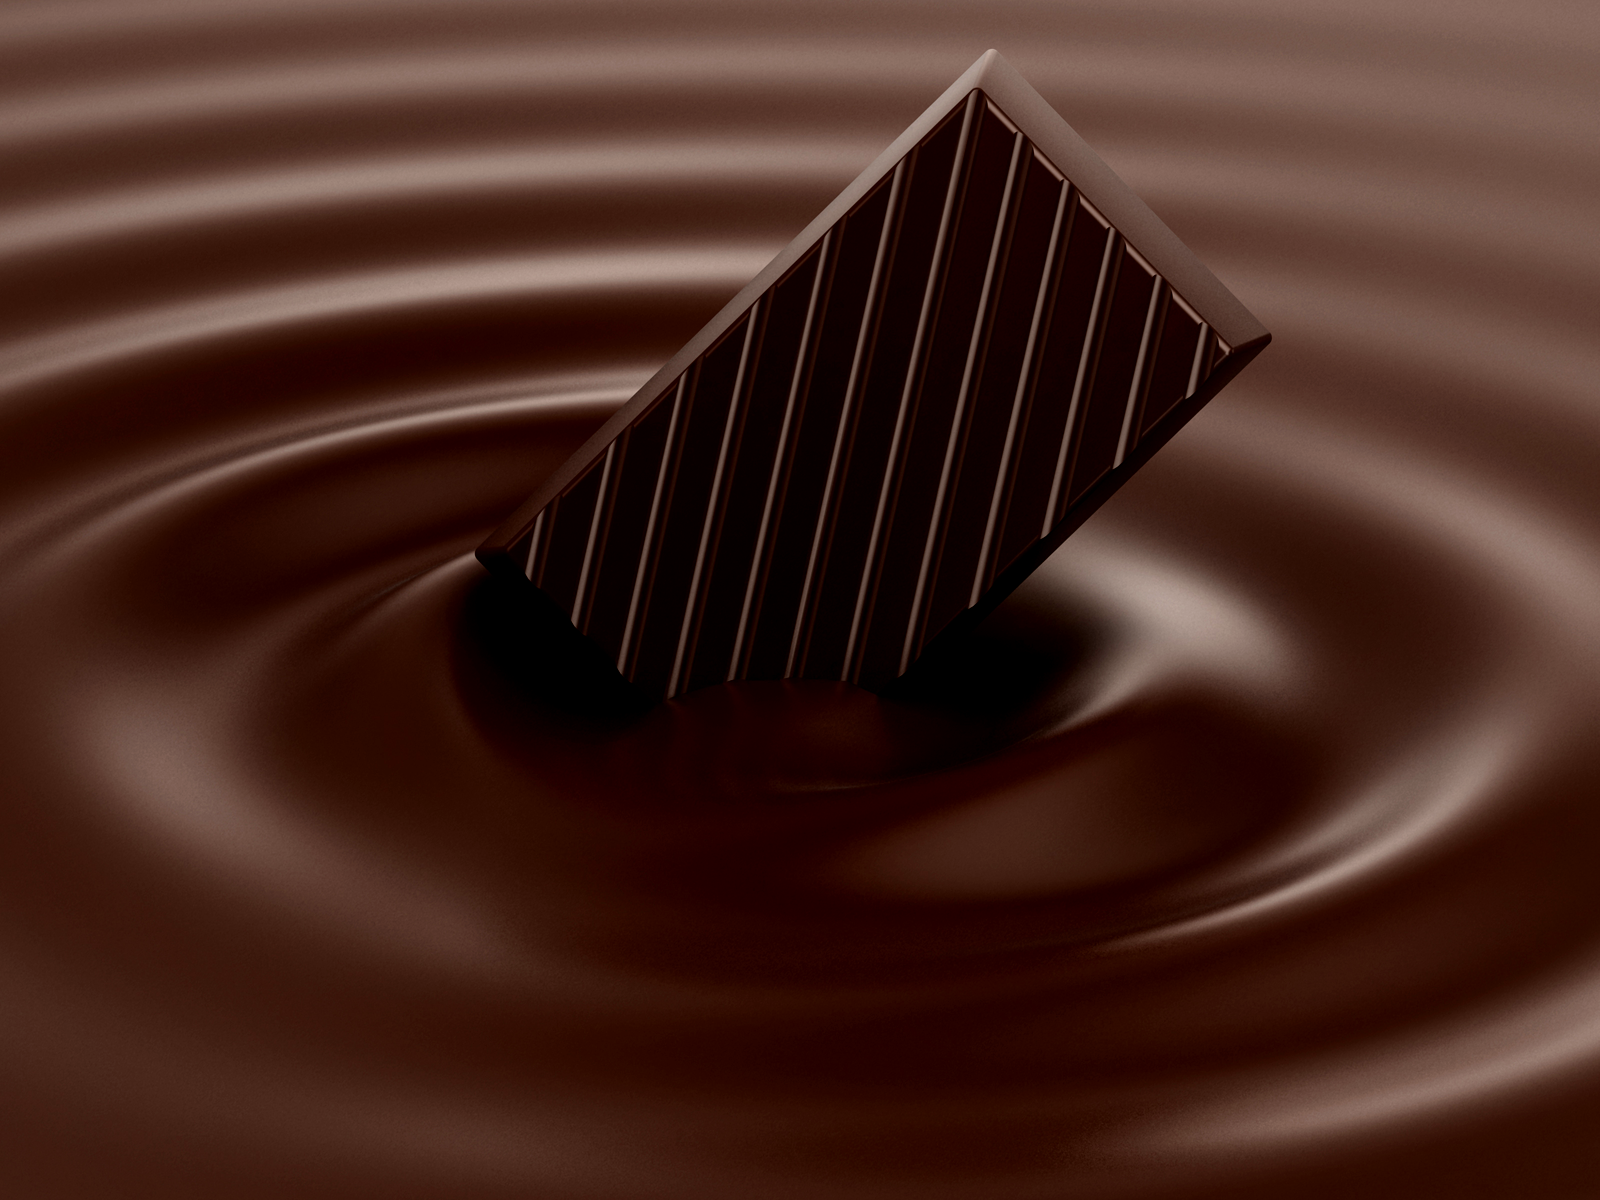 Another Chocolate wallpaper Todays Republican Mendacity The 1600x1200